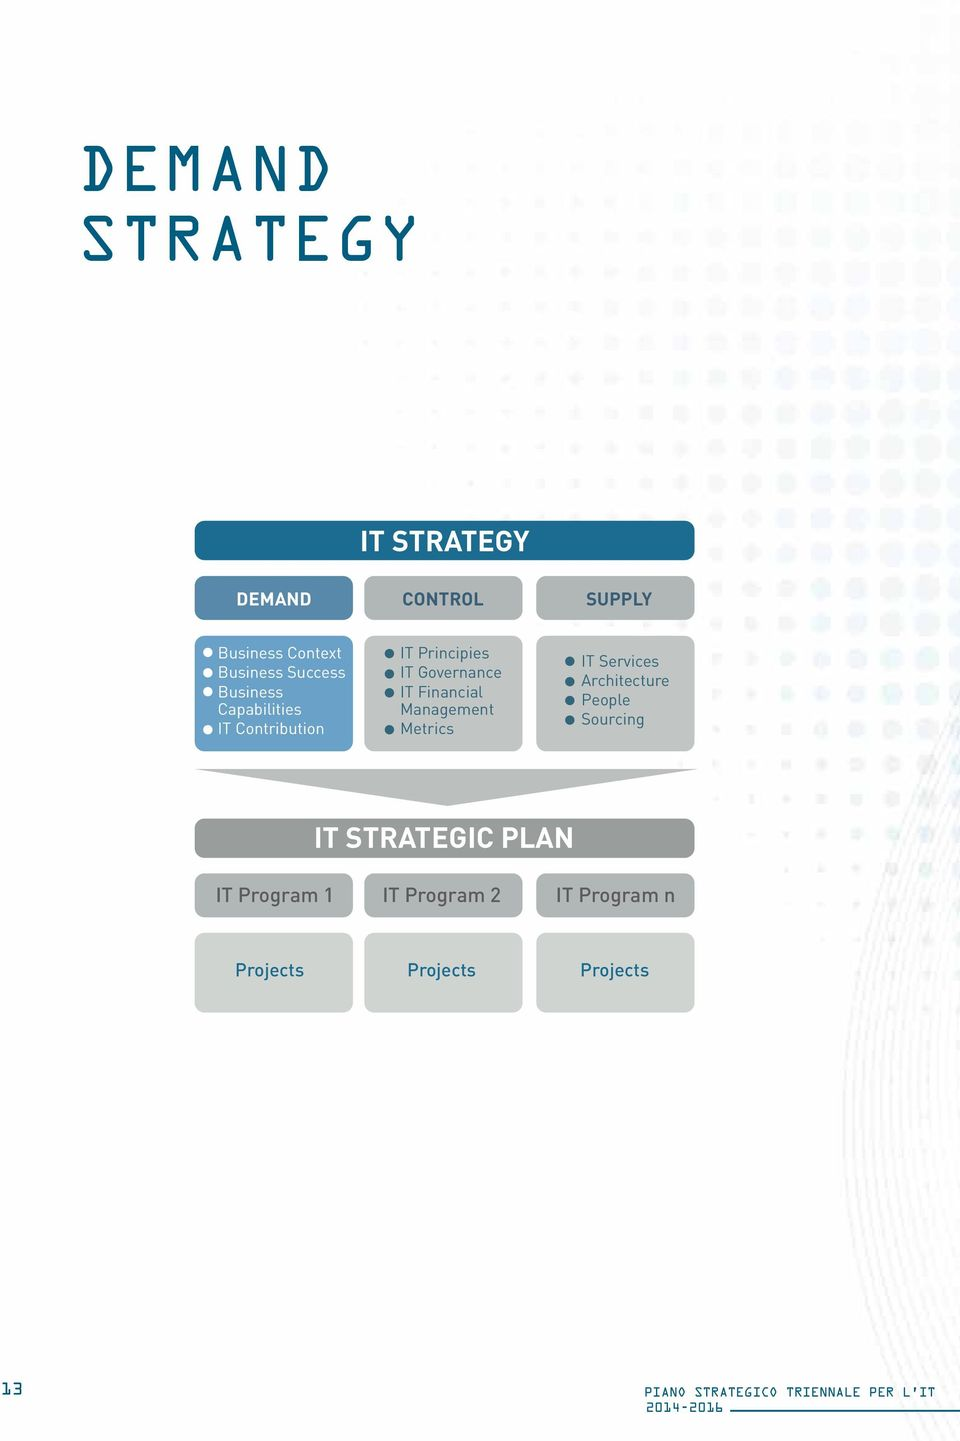 Management Metrics IT Services Architecture People Sourcing IT STRATEGIC PLAN IT